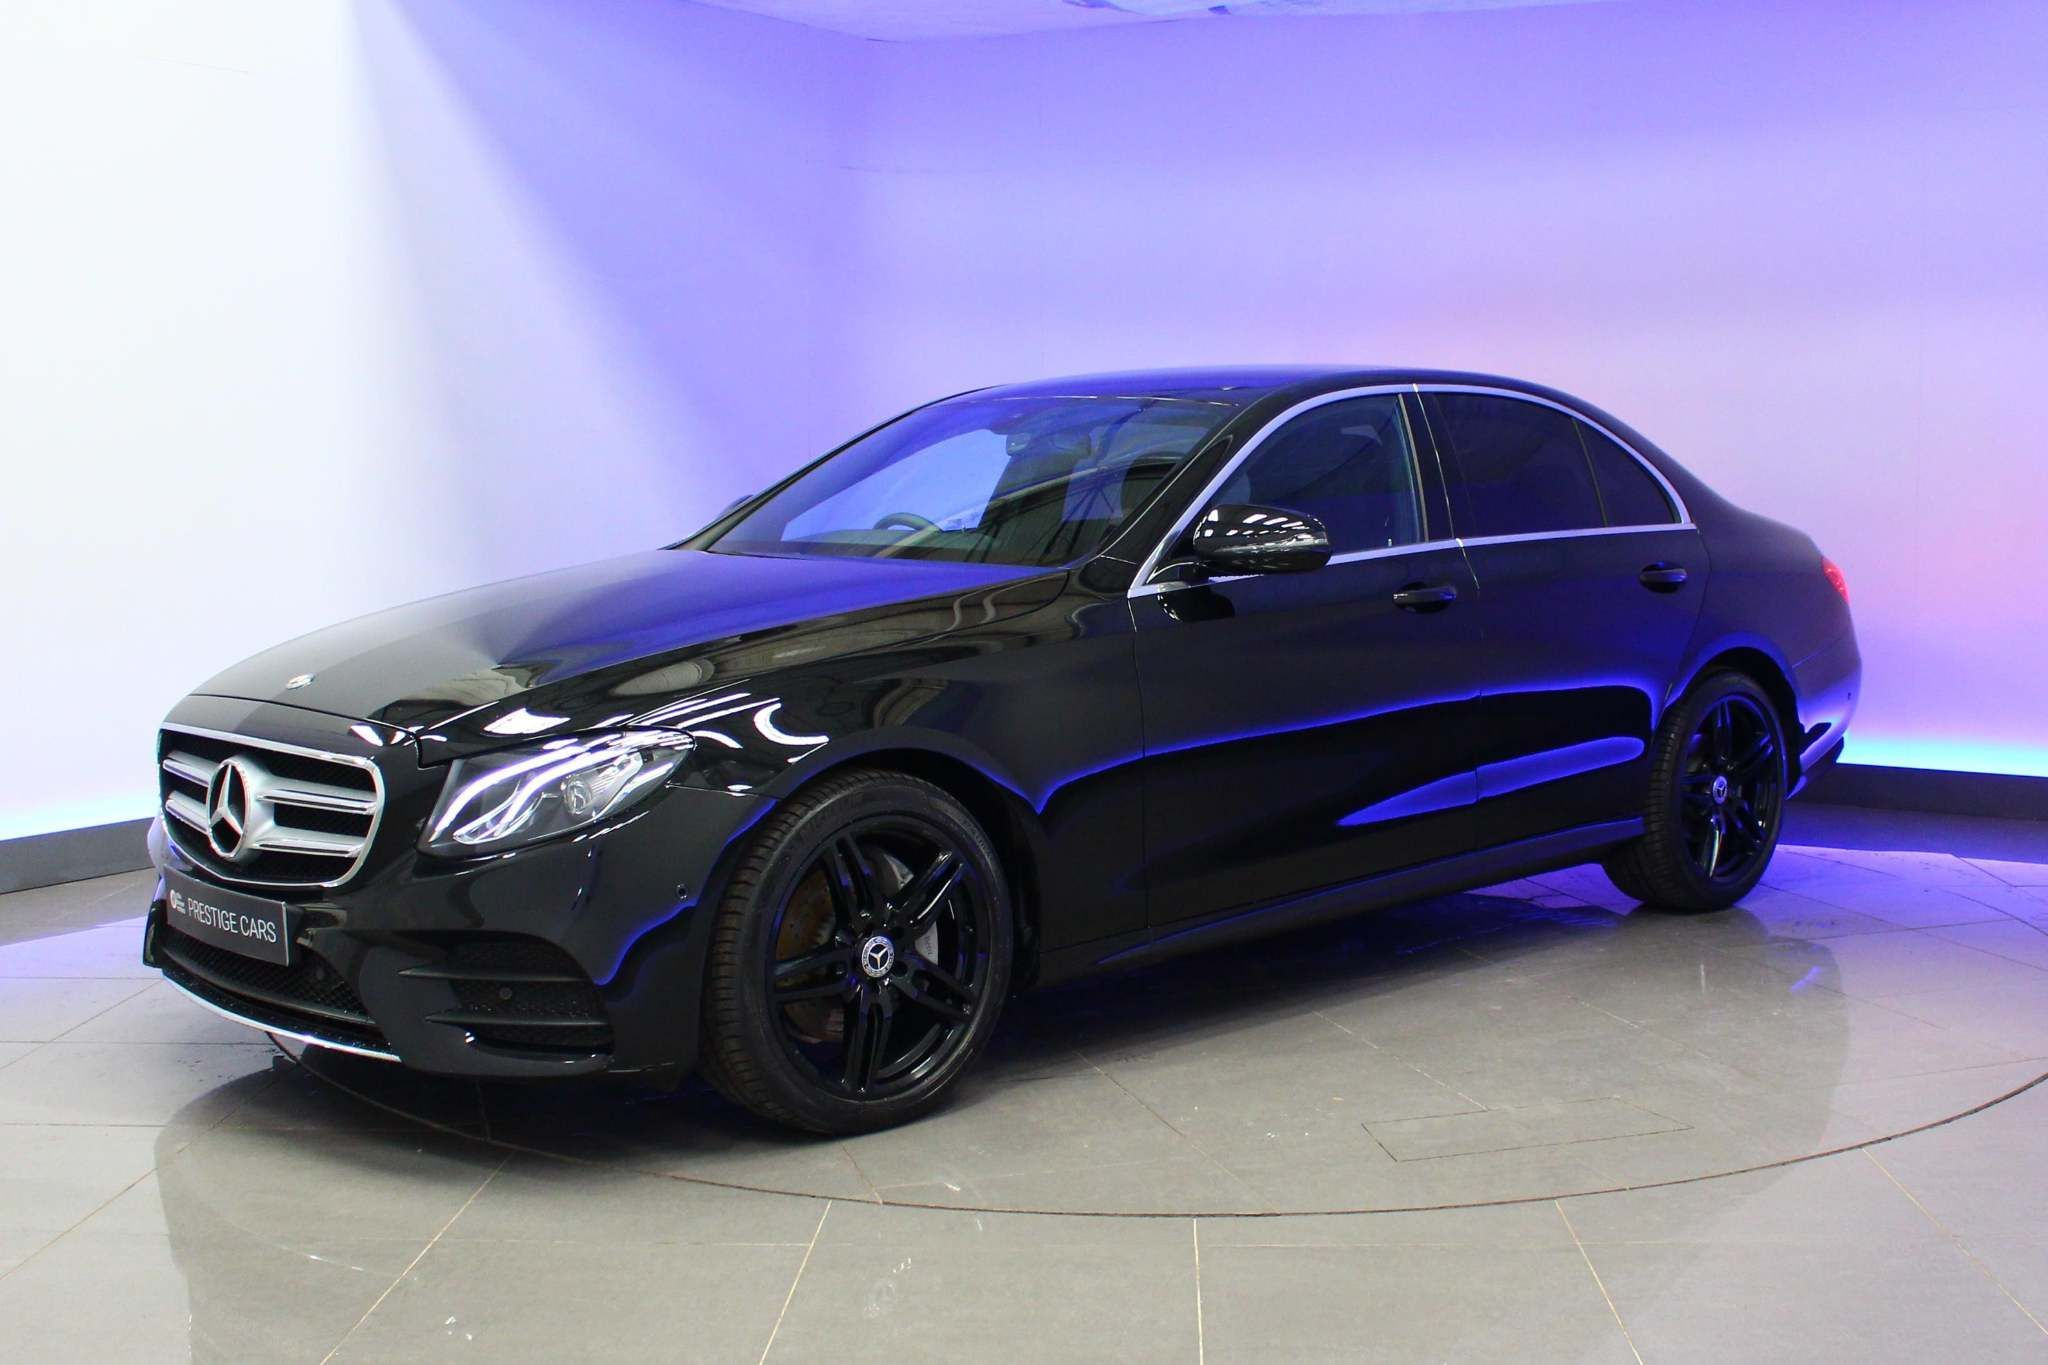 Used  Mercedes-Benz E Class AMG Line